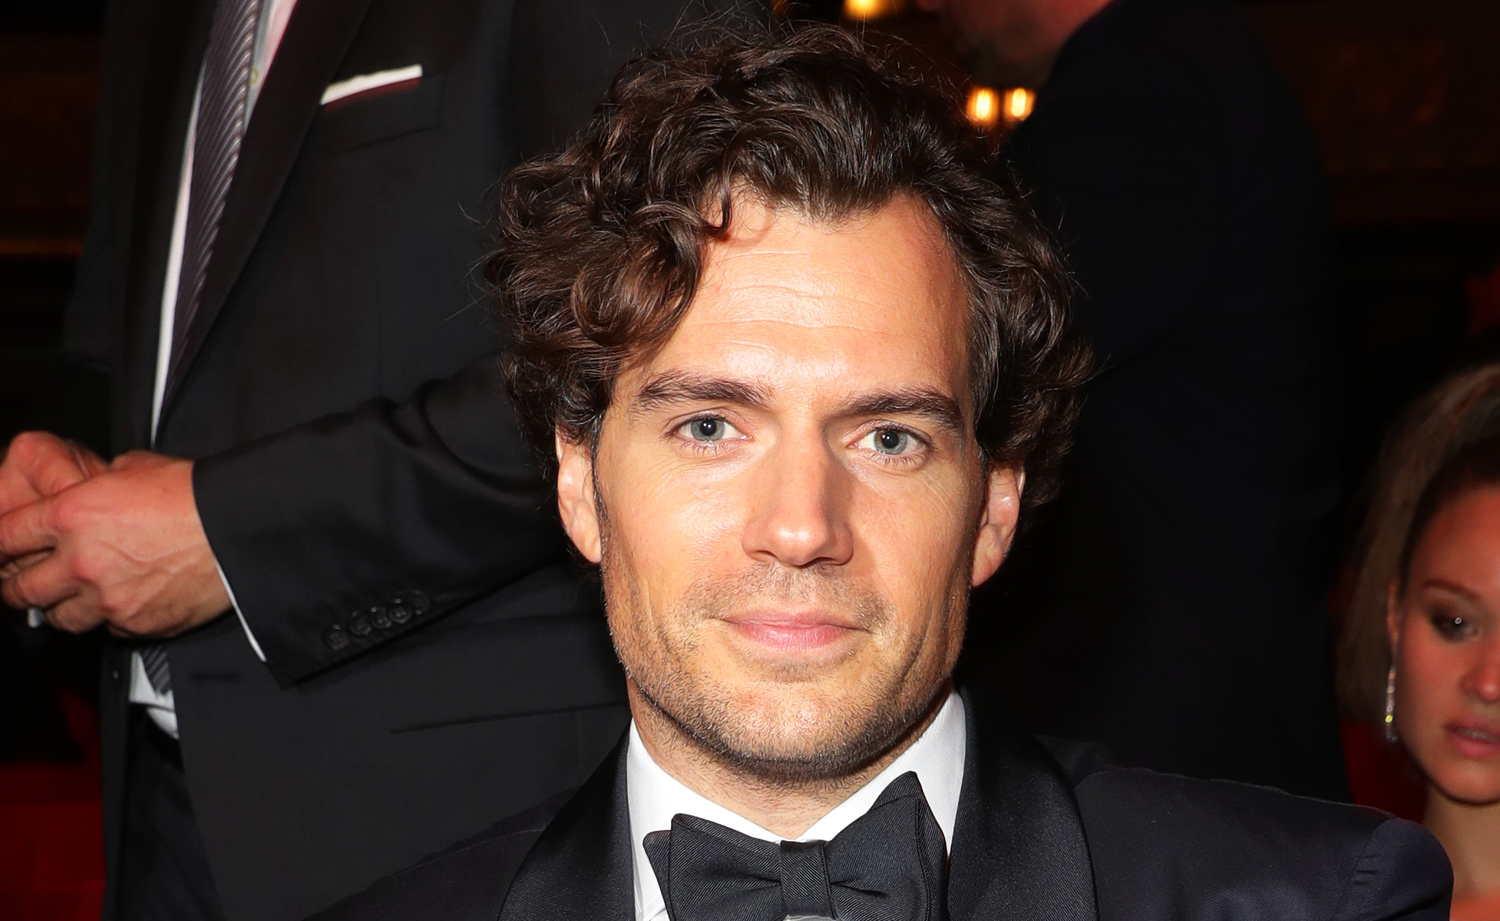 Man of Steel set photos reveal Henry Cavill showing off